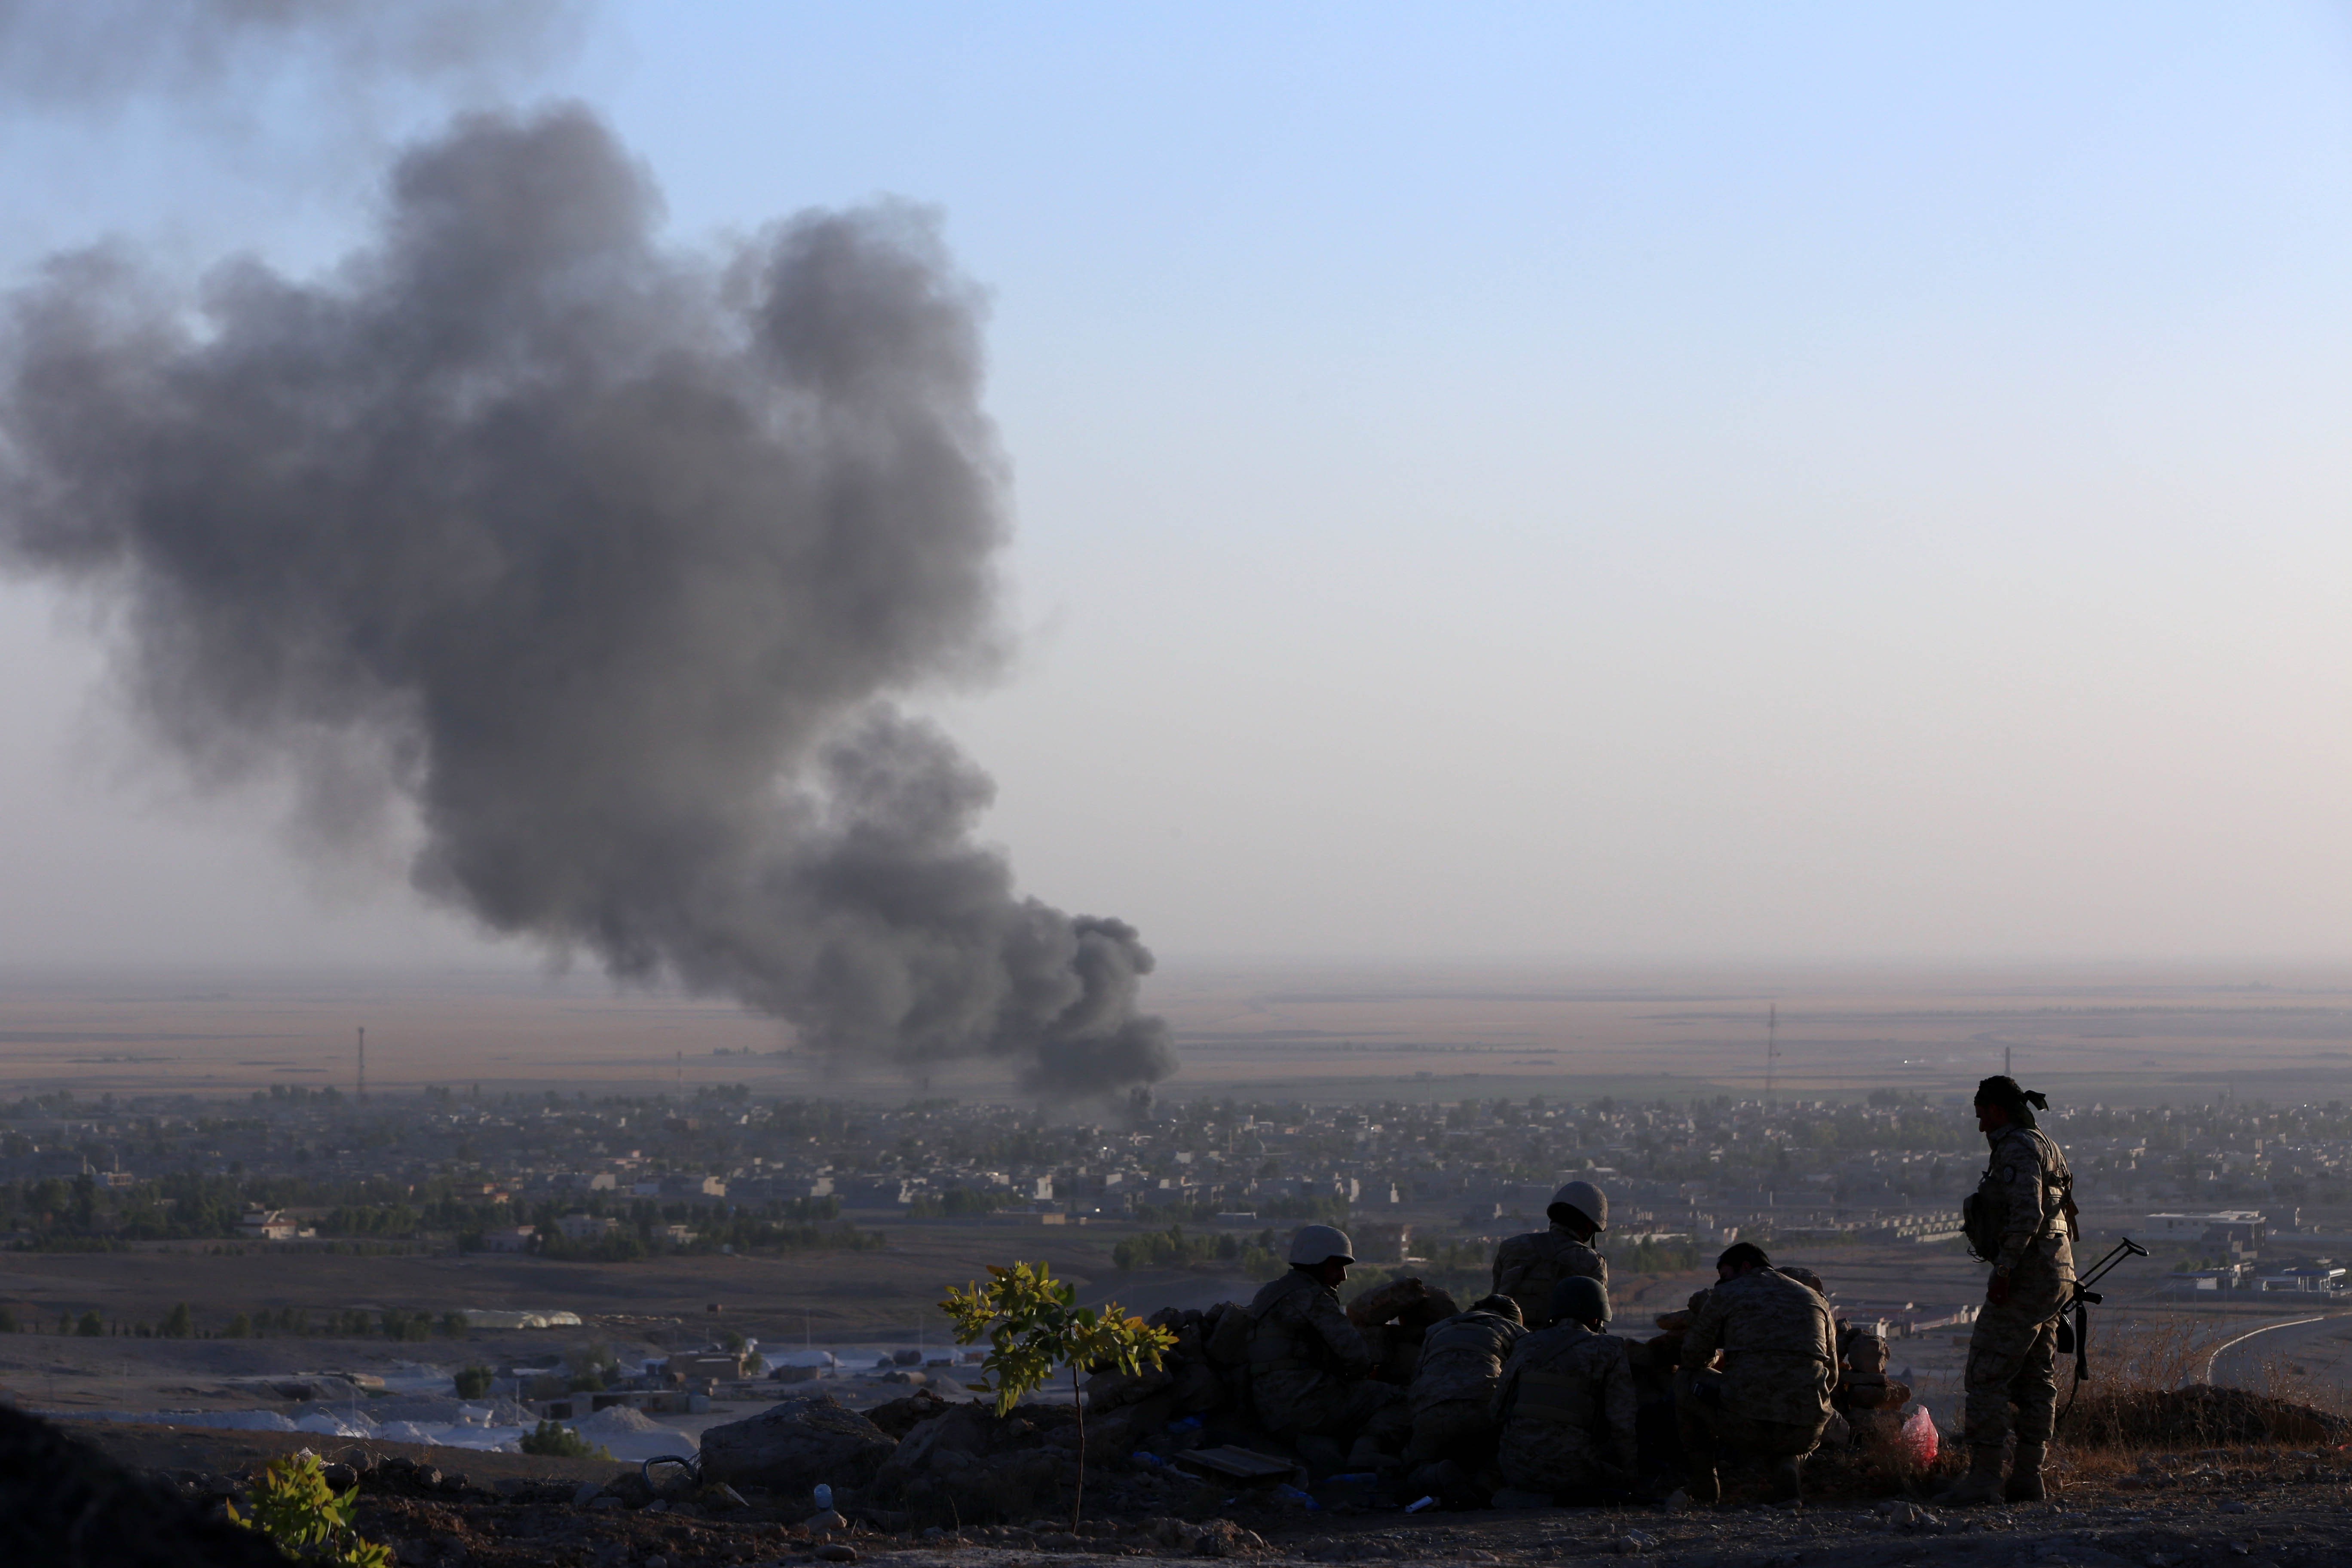 Iraqi Kurdish Peshmerga fighters look on as smoke billows from the town Makhmur, about 175 miles north of Baghdad, during clashes with ISIS militants on August 9, 2014